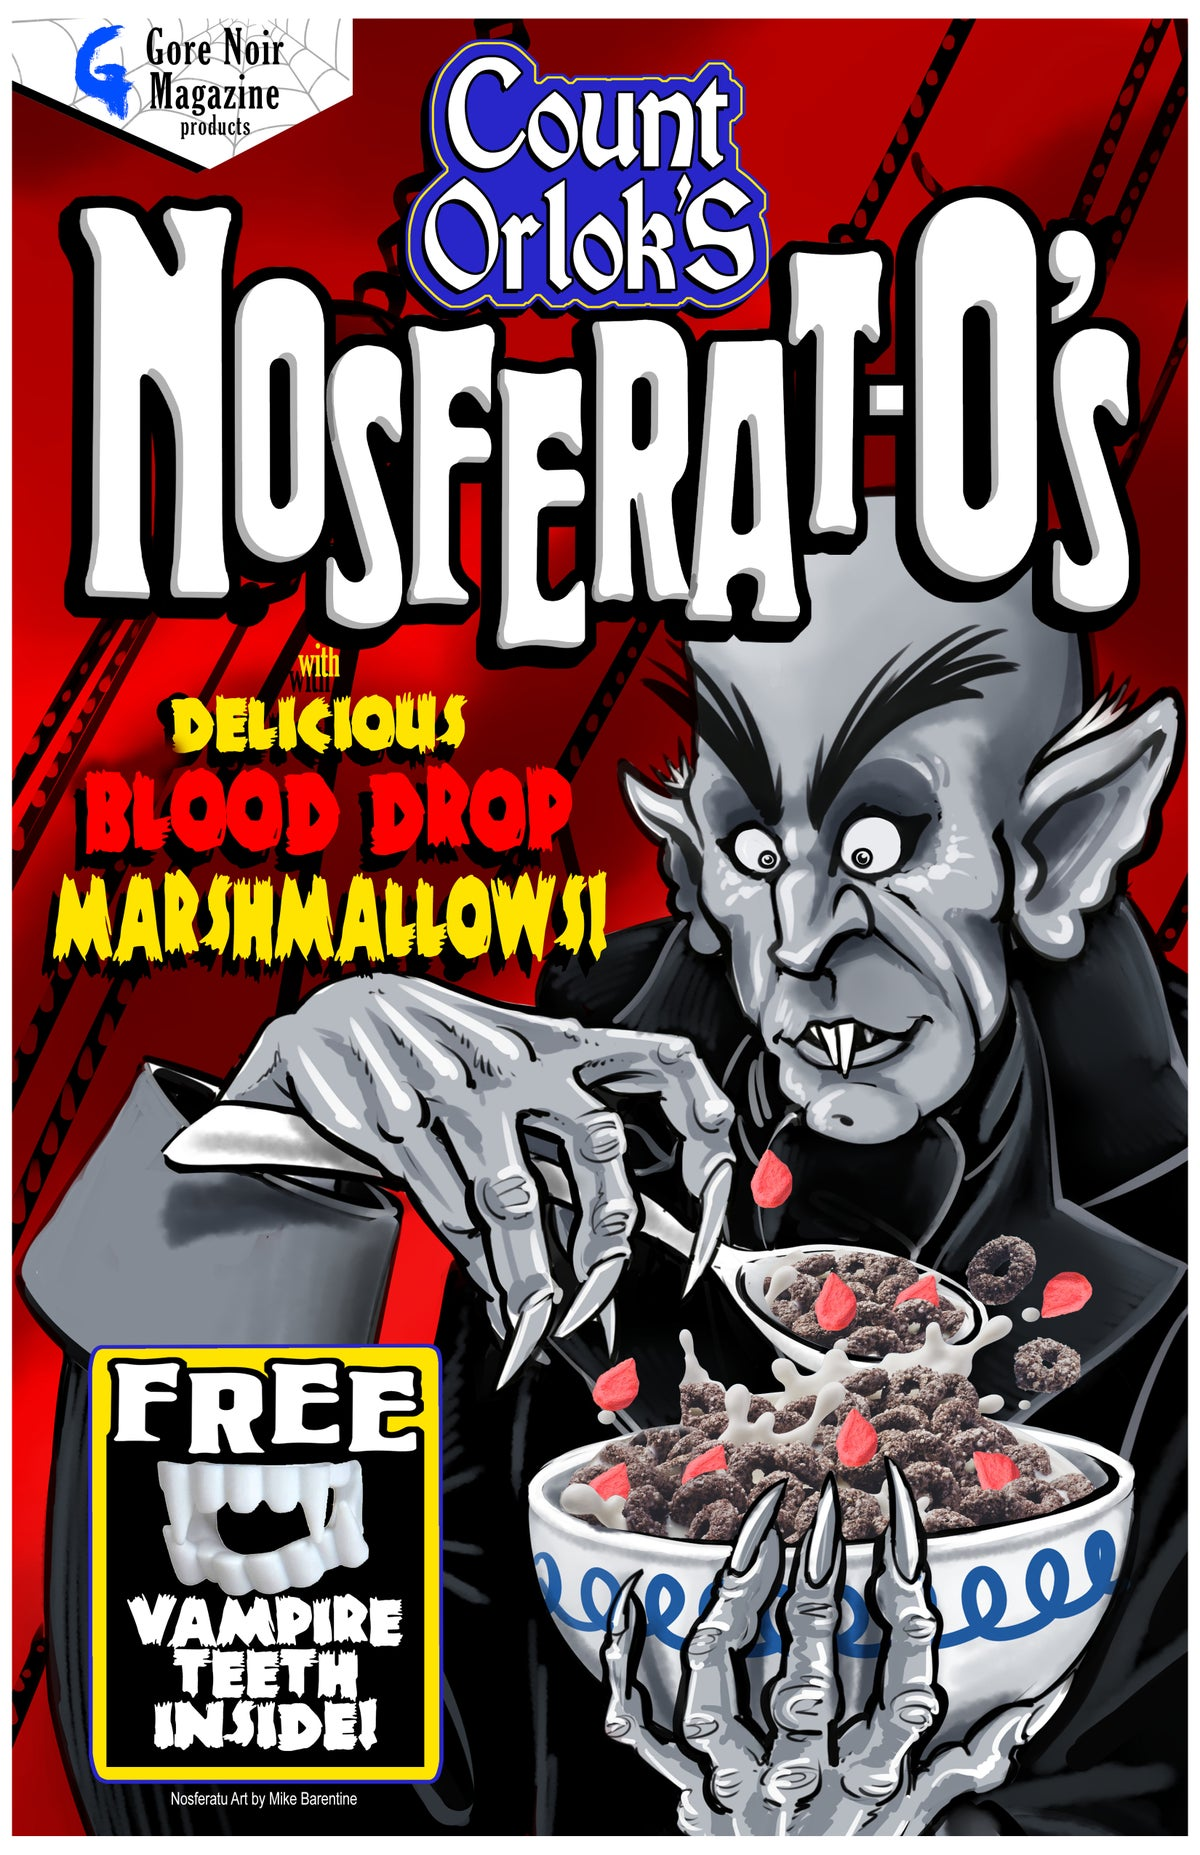 Image of Nosferat-O's Cereal 11x17 Poster